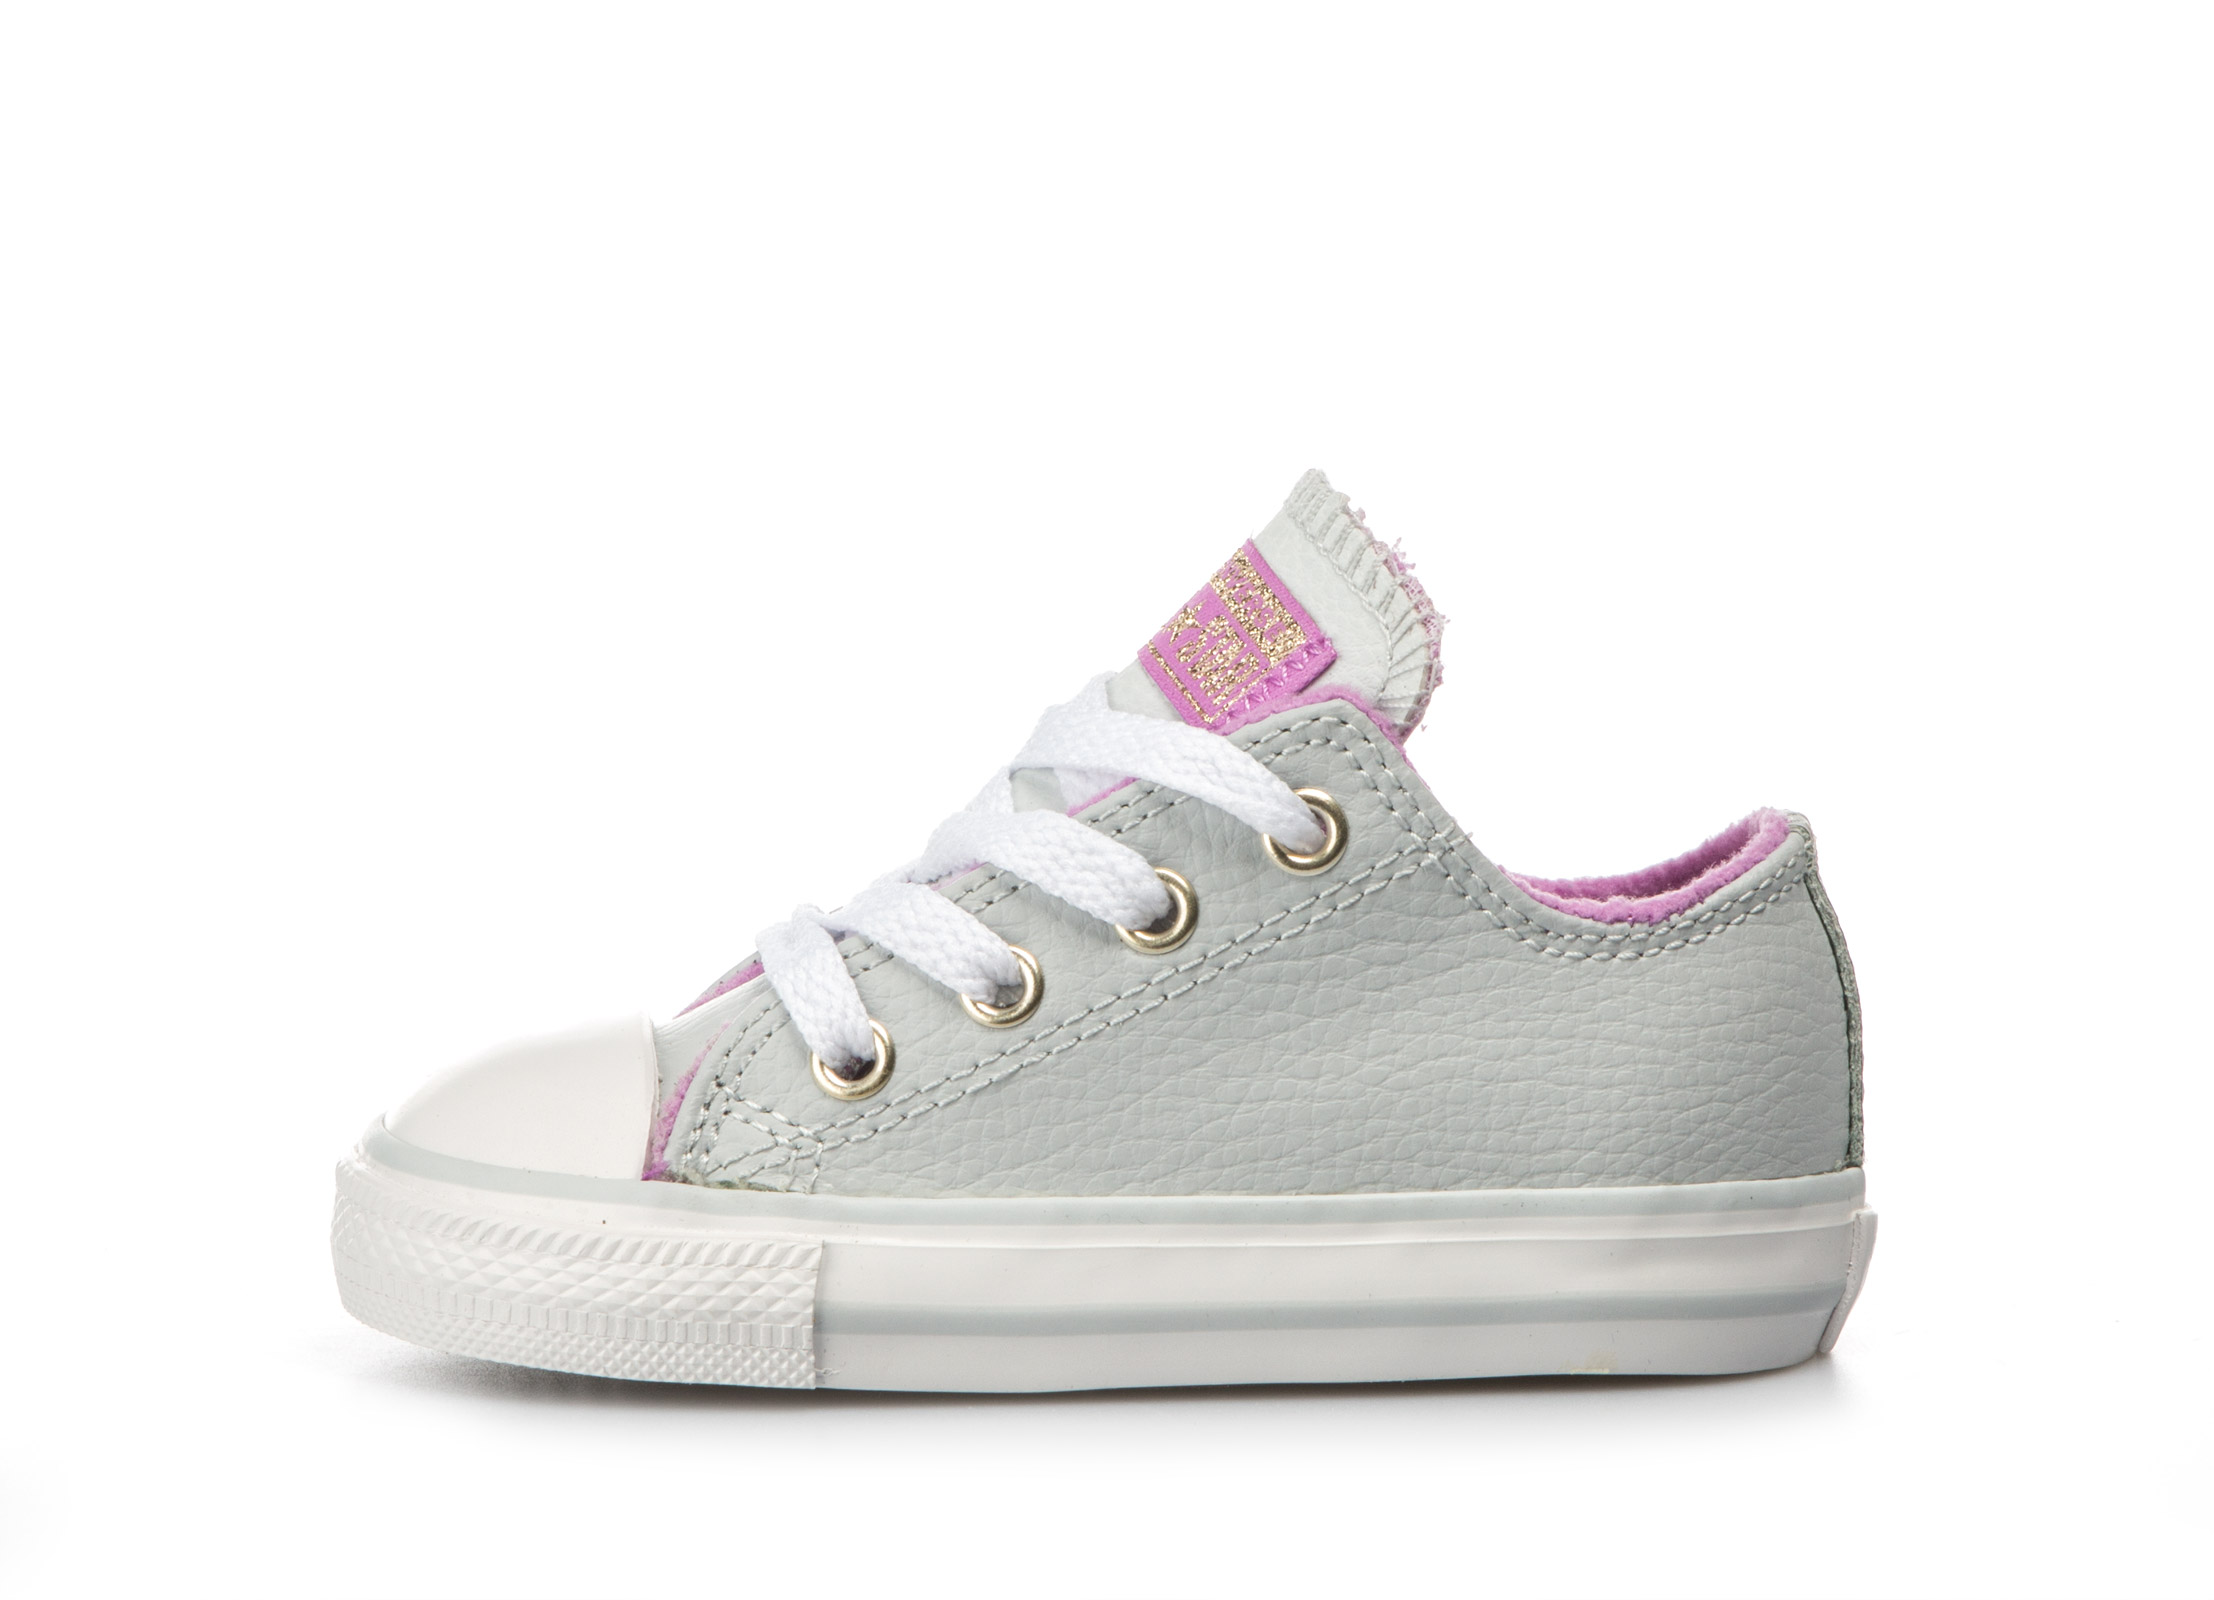 CONVERSE Chuck Taylor All Star Ox 761957C Γκρί - Glami.gr efc8aba6ea4